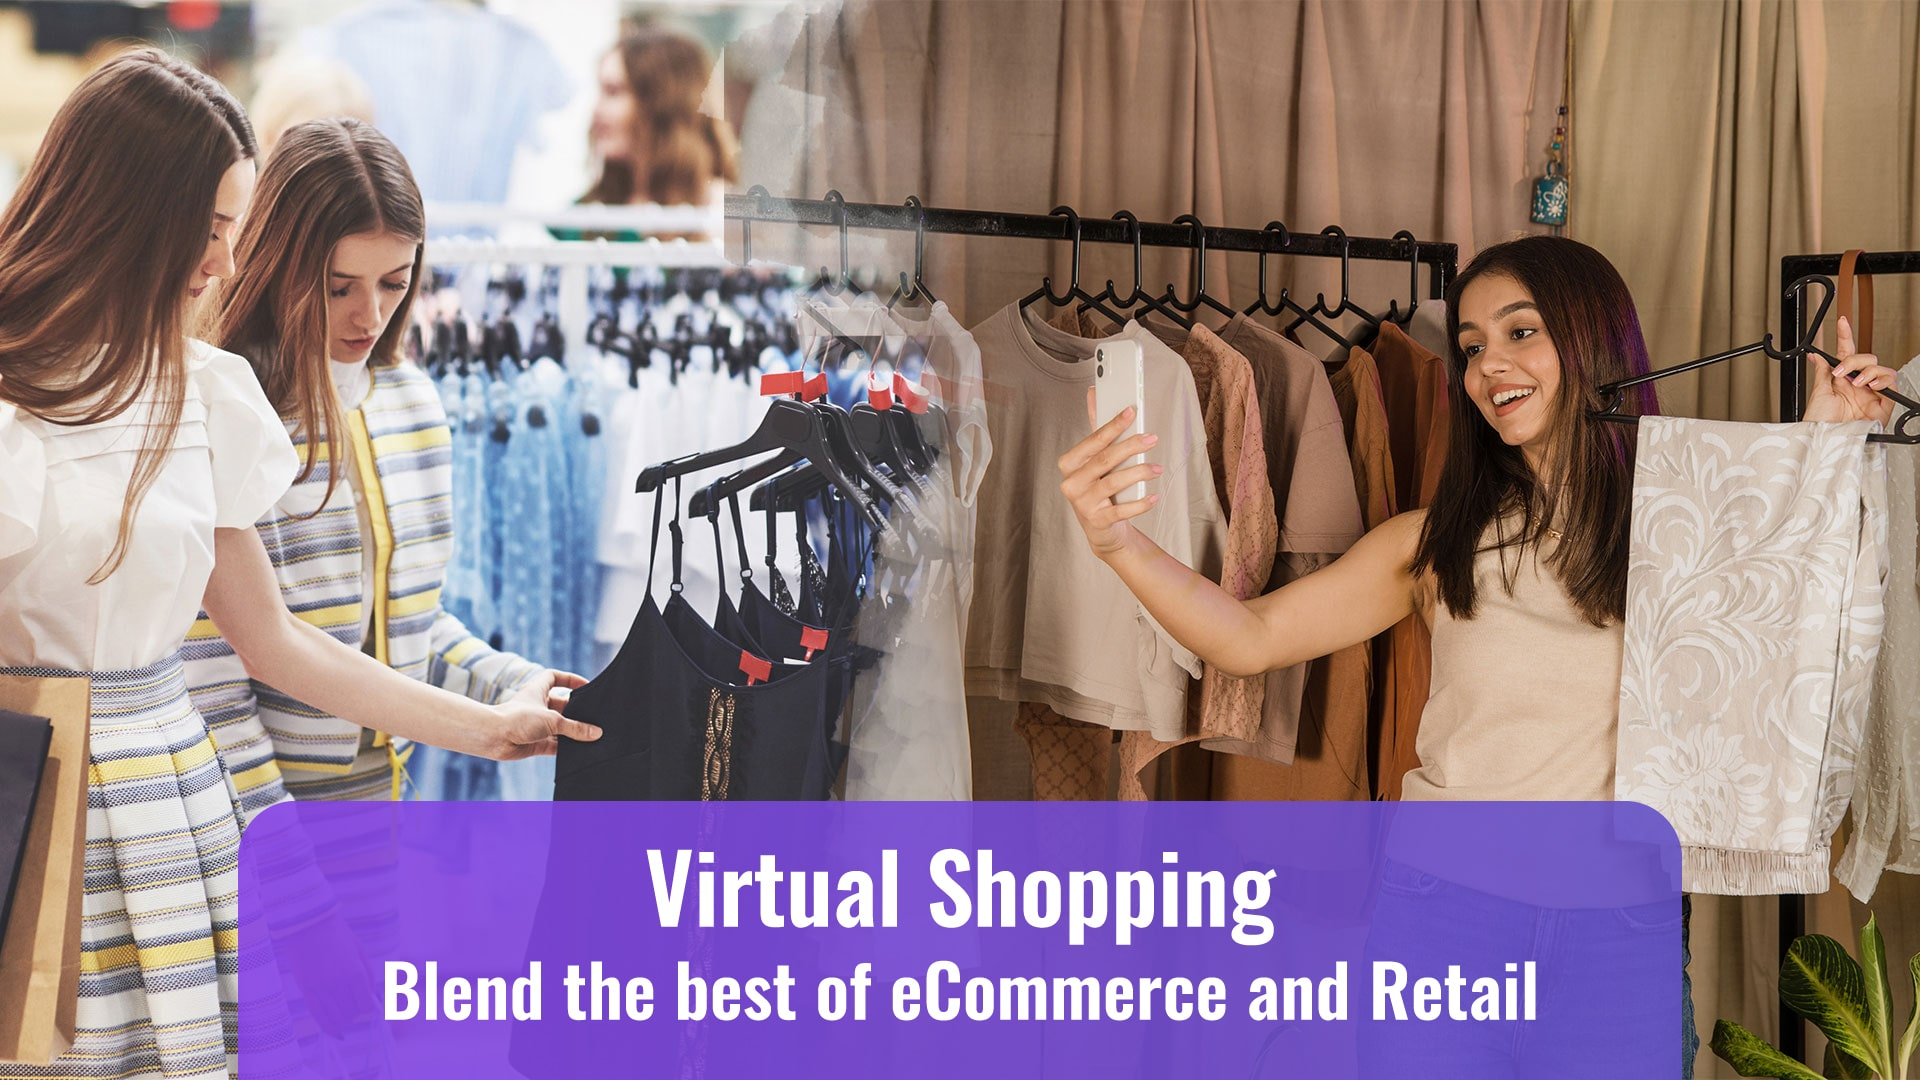 Virtual-Shopping-Blend-the-best-of-eCommerce-and-Retail-thumbnail